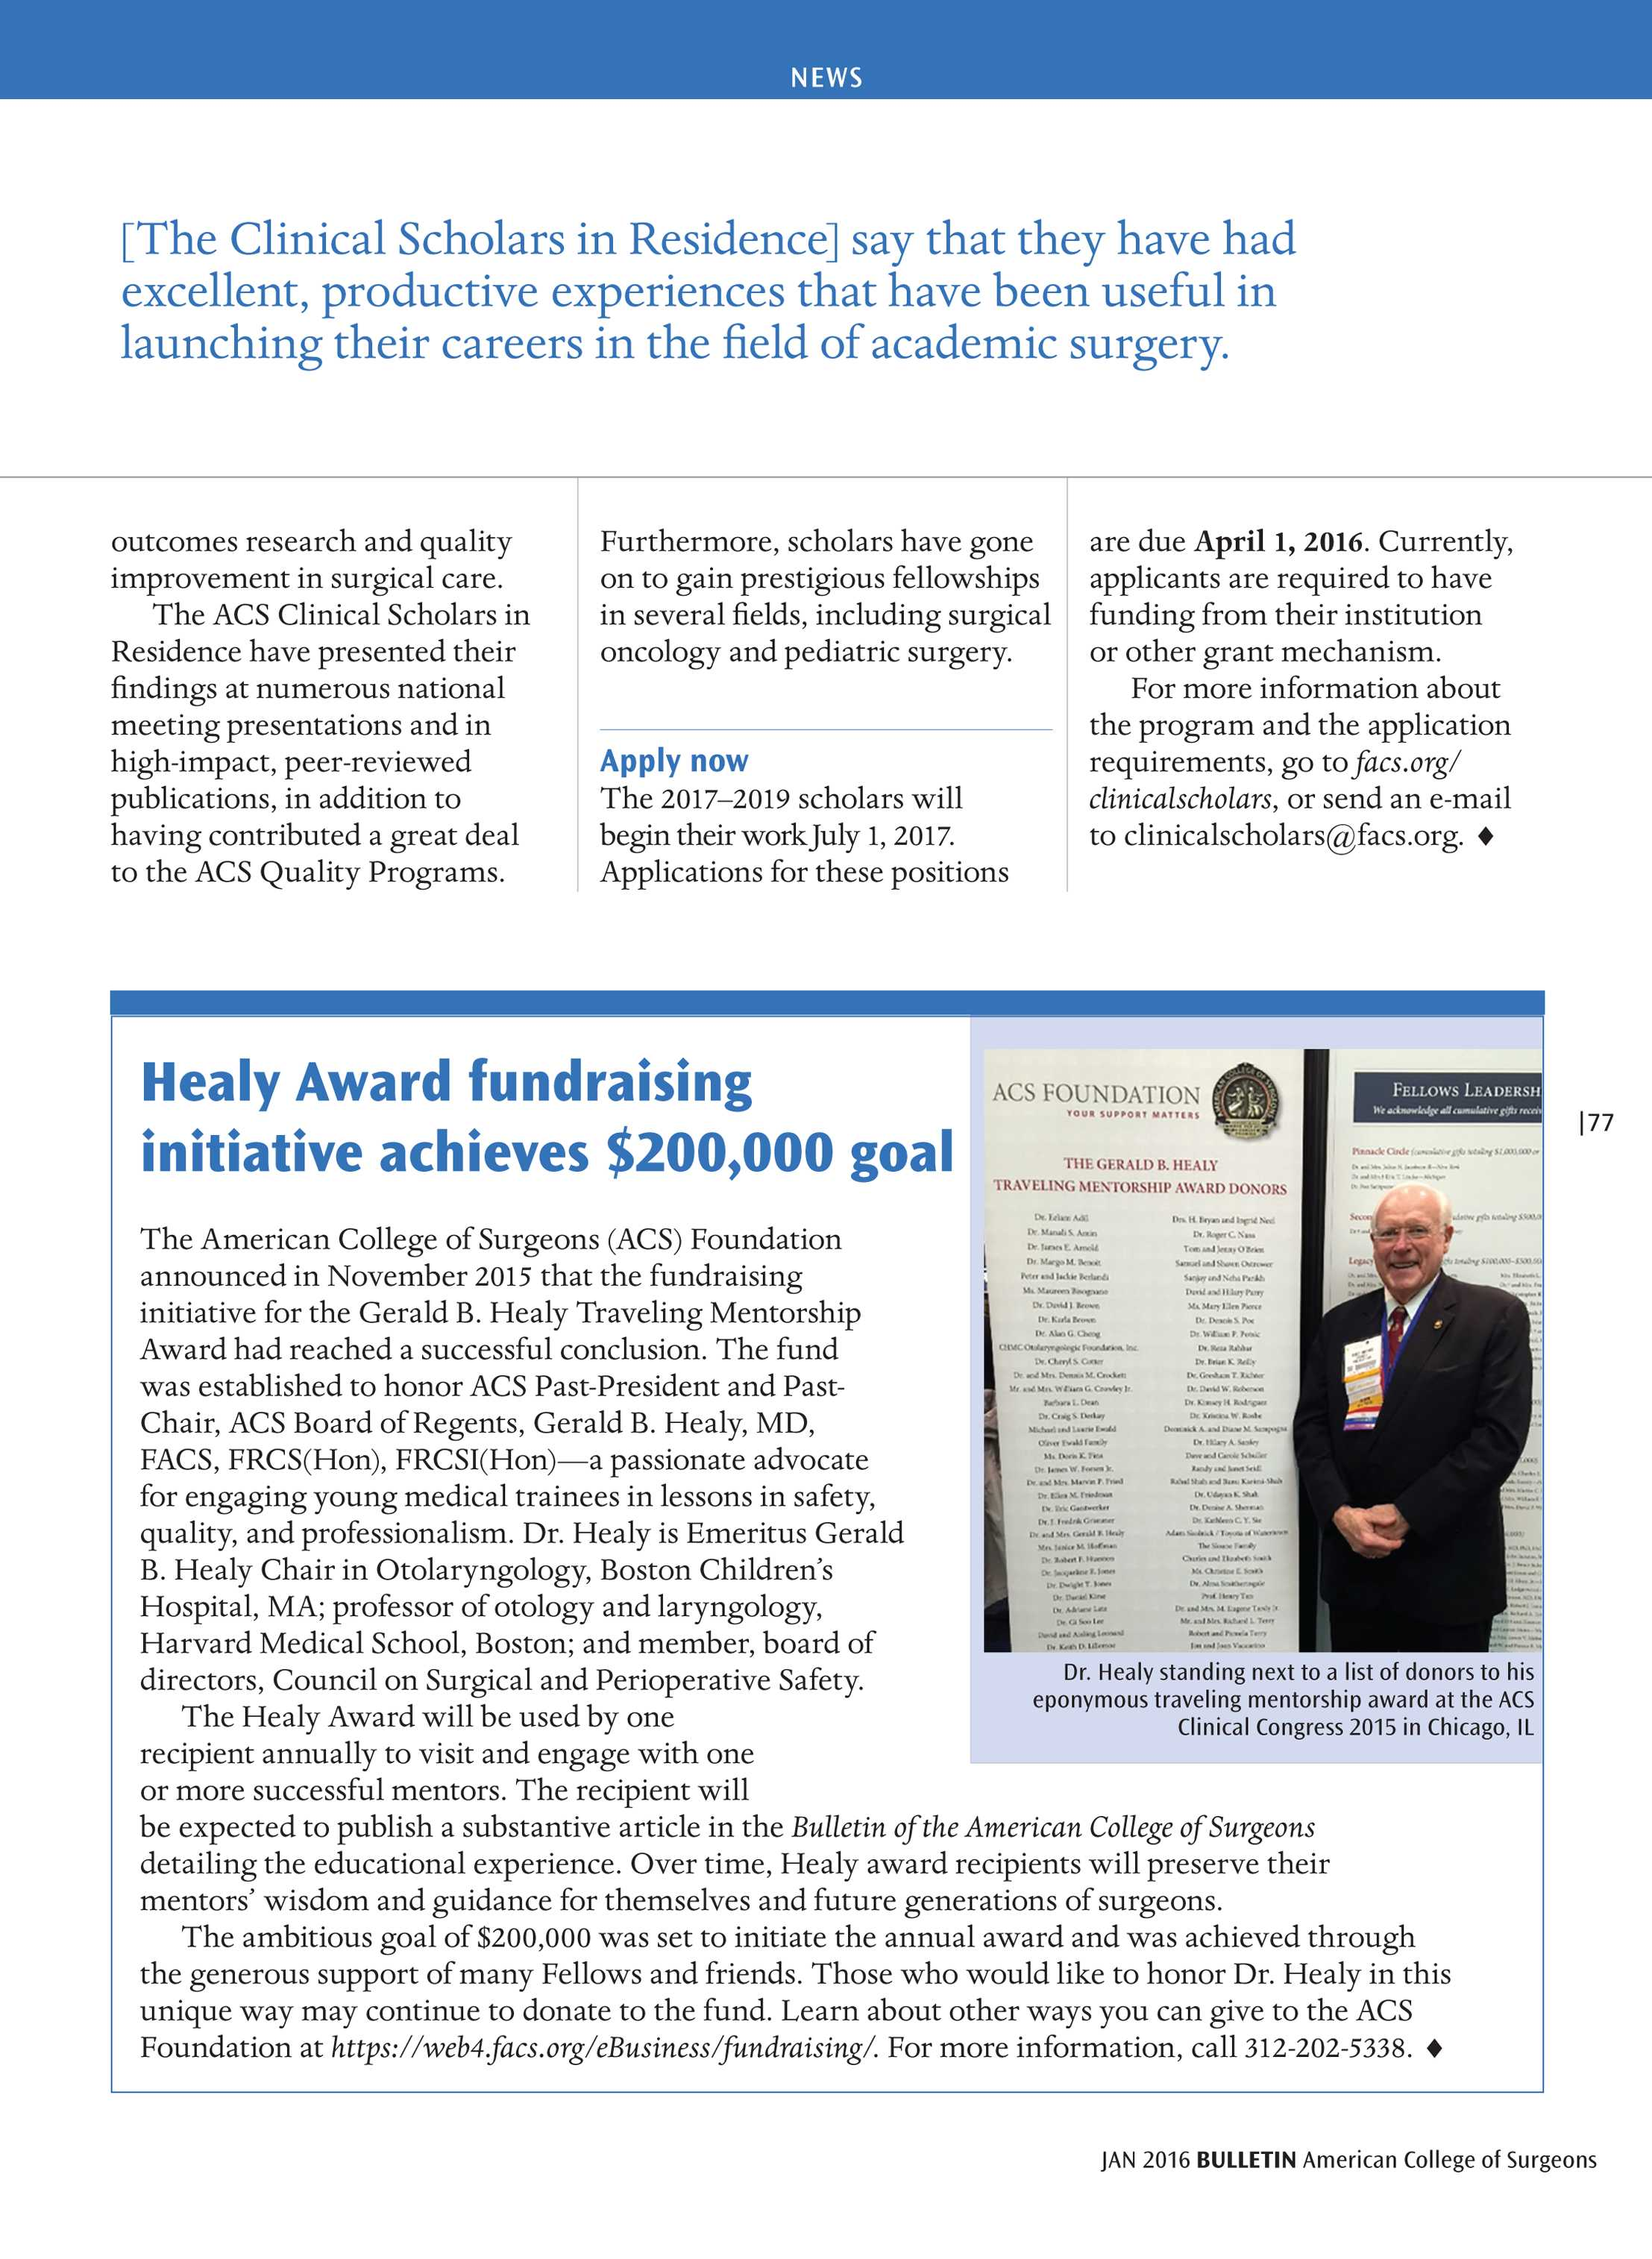 Acs Bulletin January 2016 Page 77